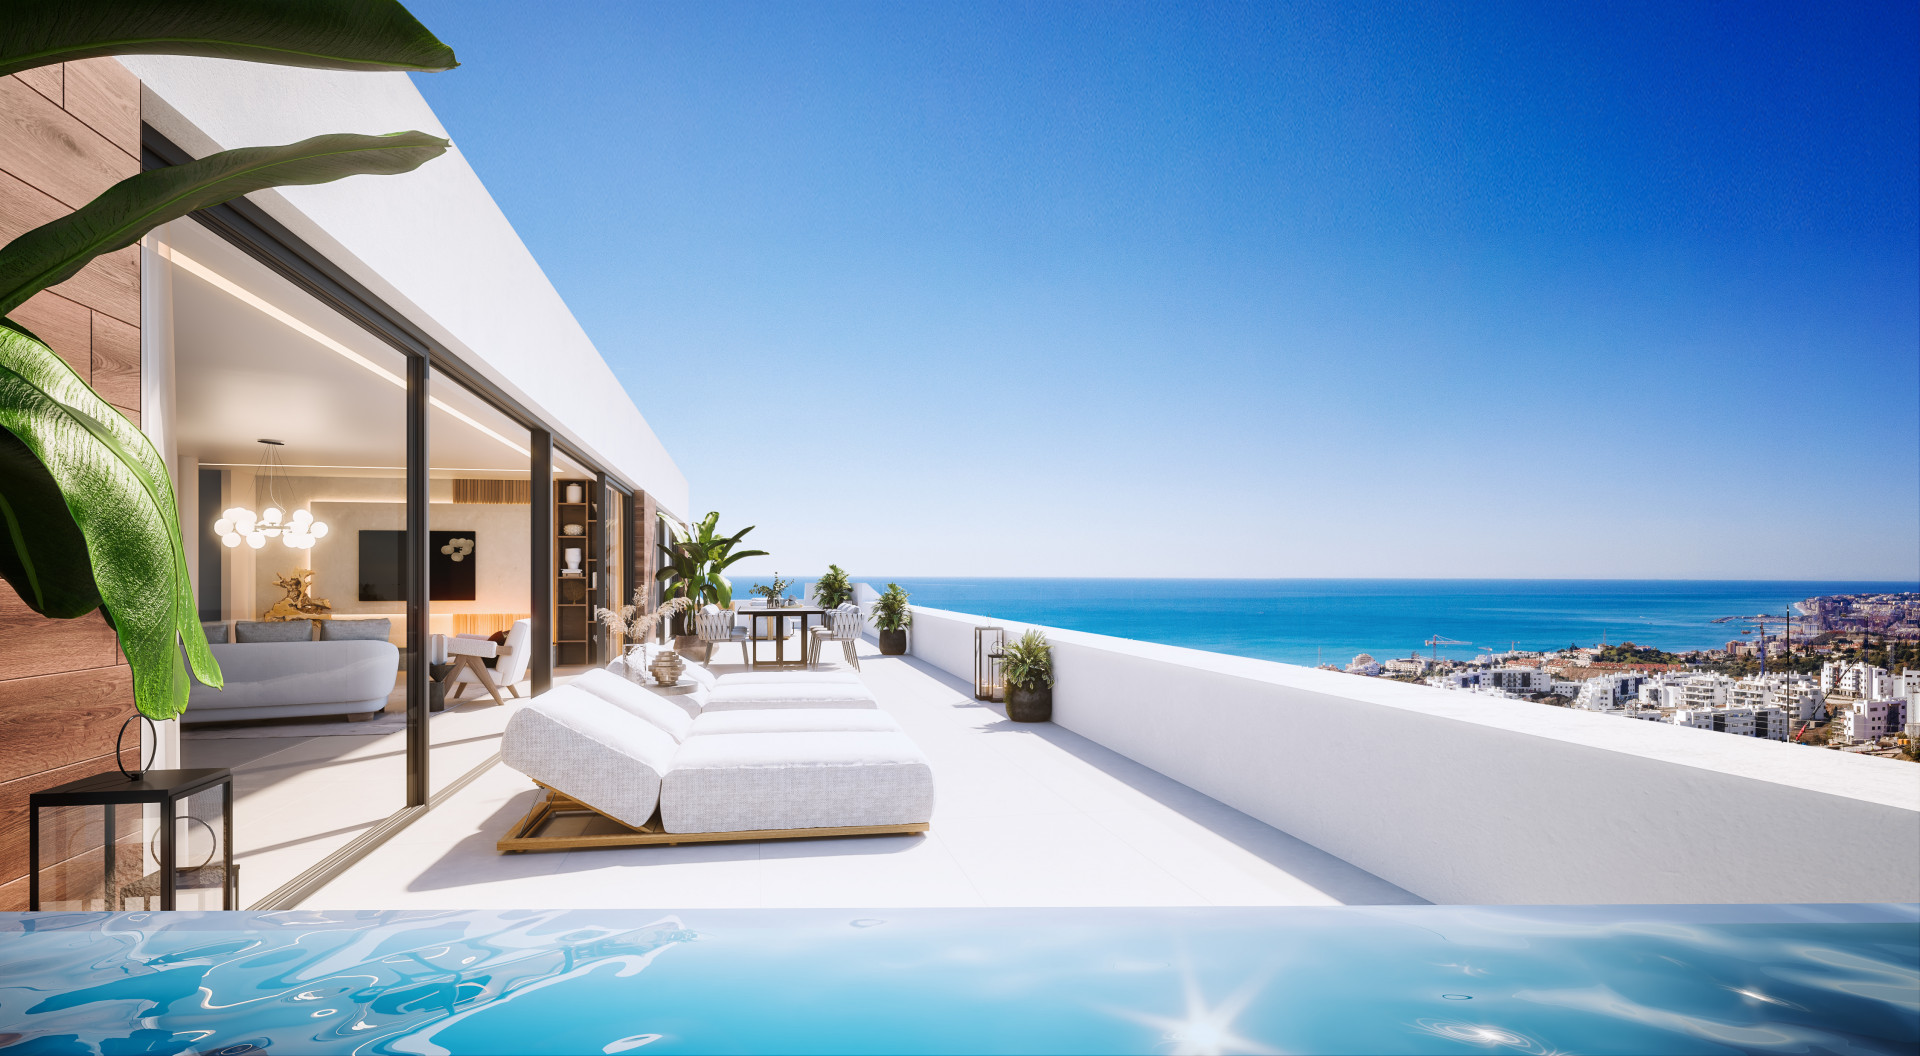 New Modern Boutique  complex of apartments for sale in El Higueron in Benalmadena